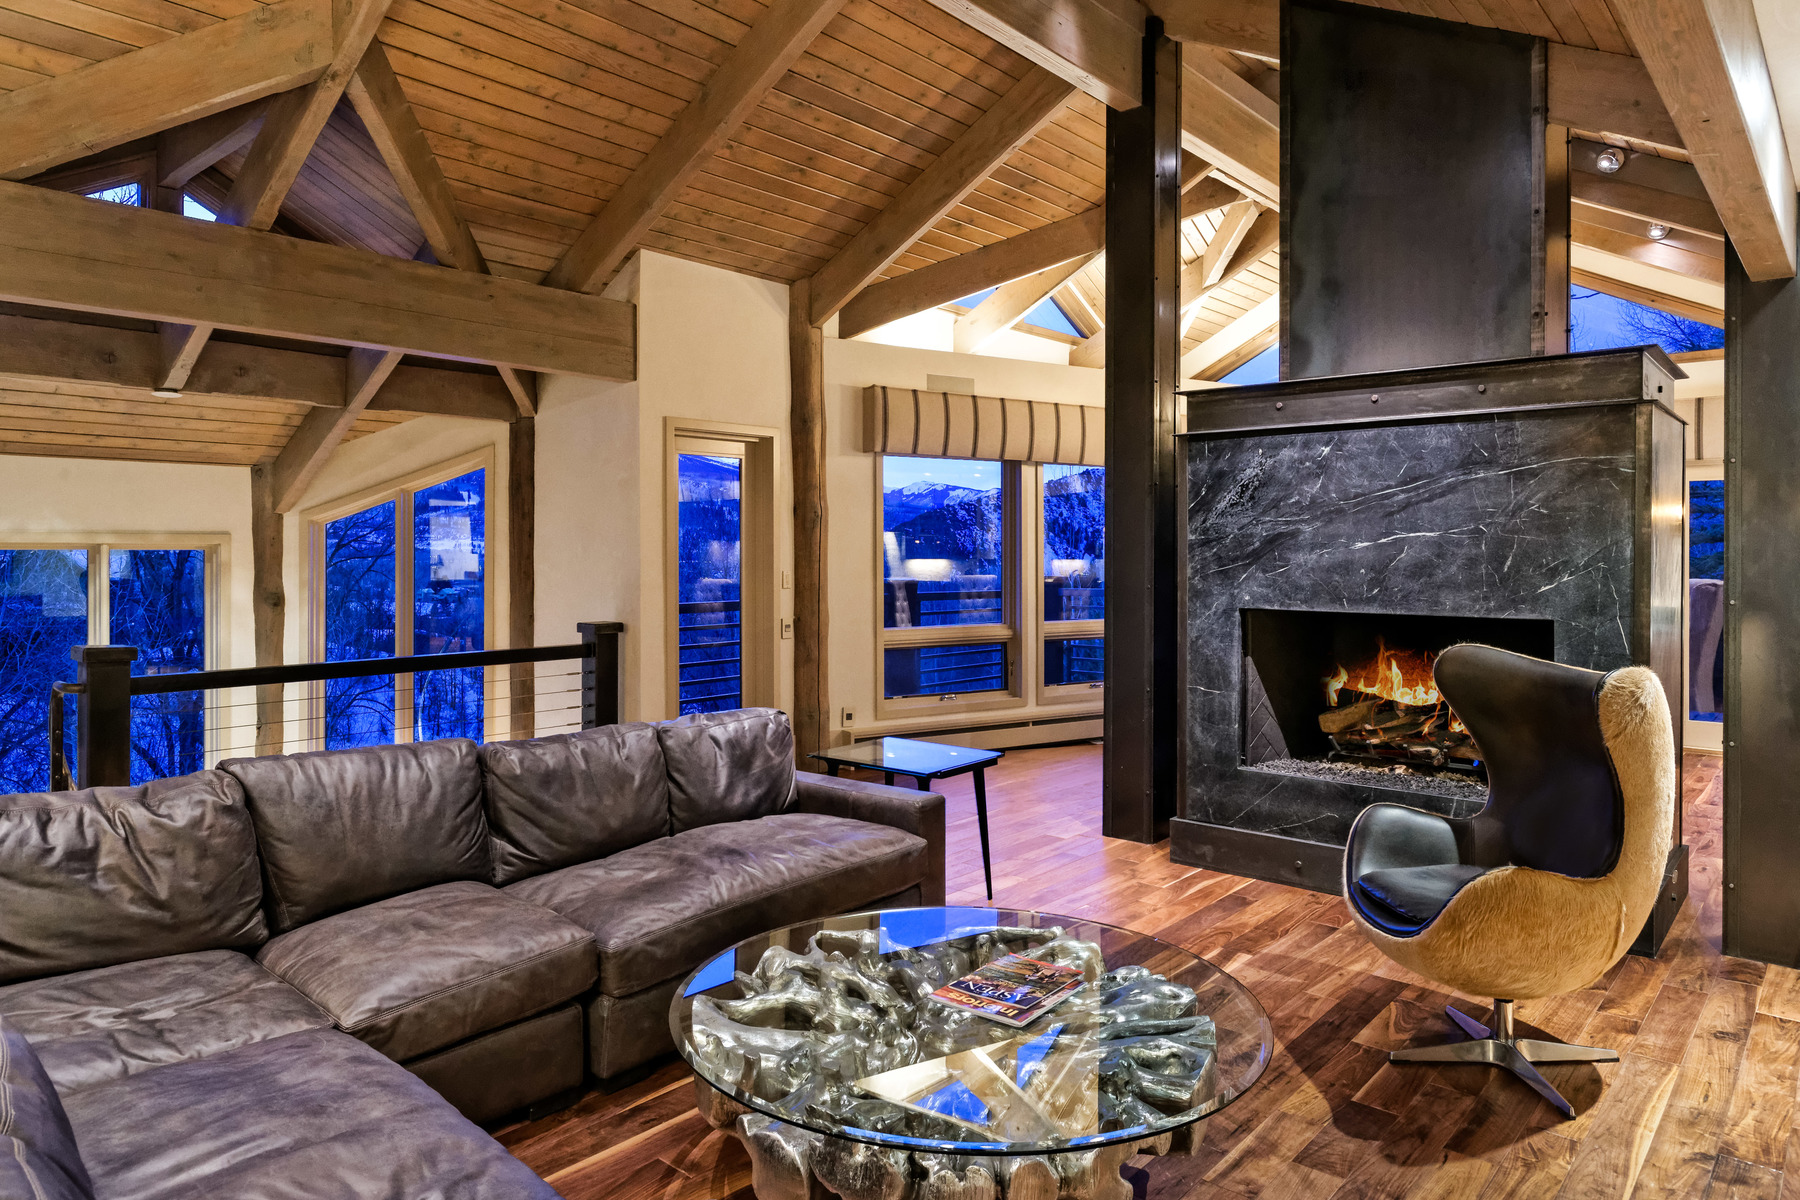 Single Family Home for Sale at Red Mountain Retreat 153 Herron Hollow Road, Red Mountain, Aspen, Colorado, 81611 United States